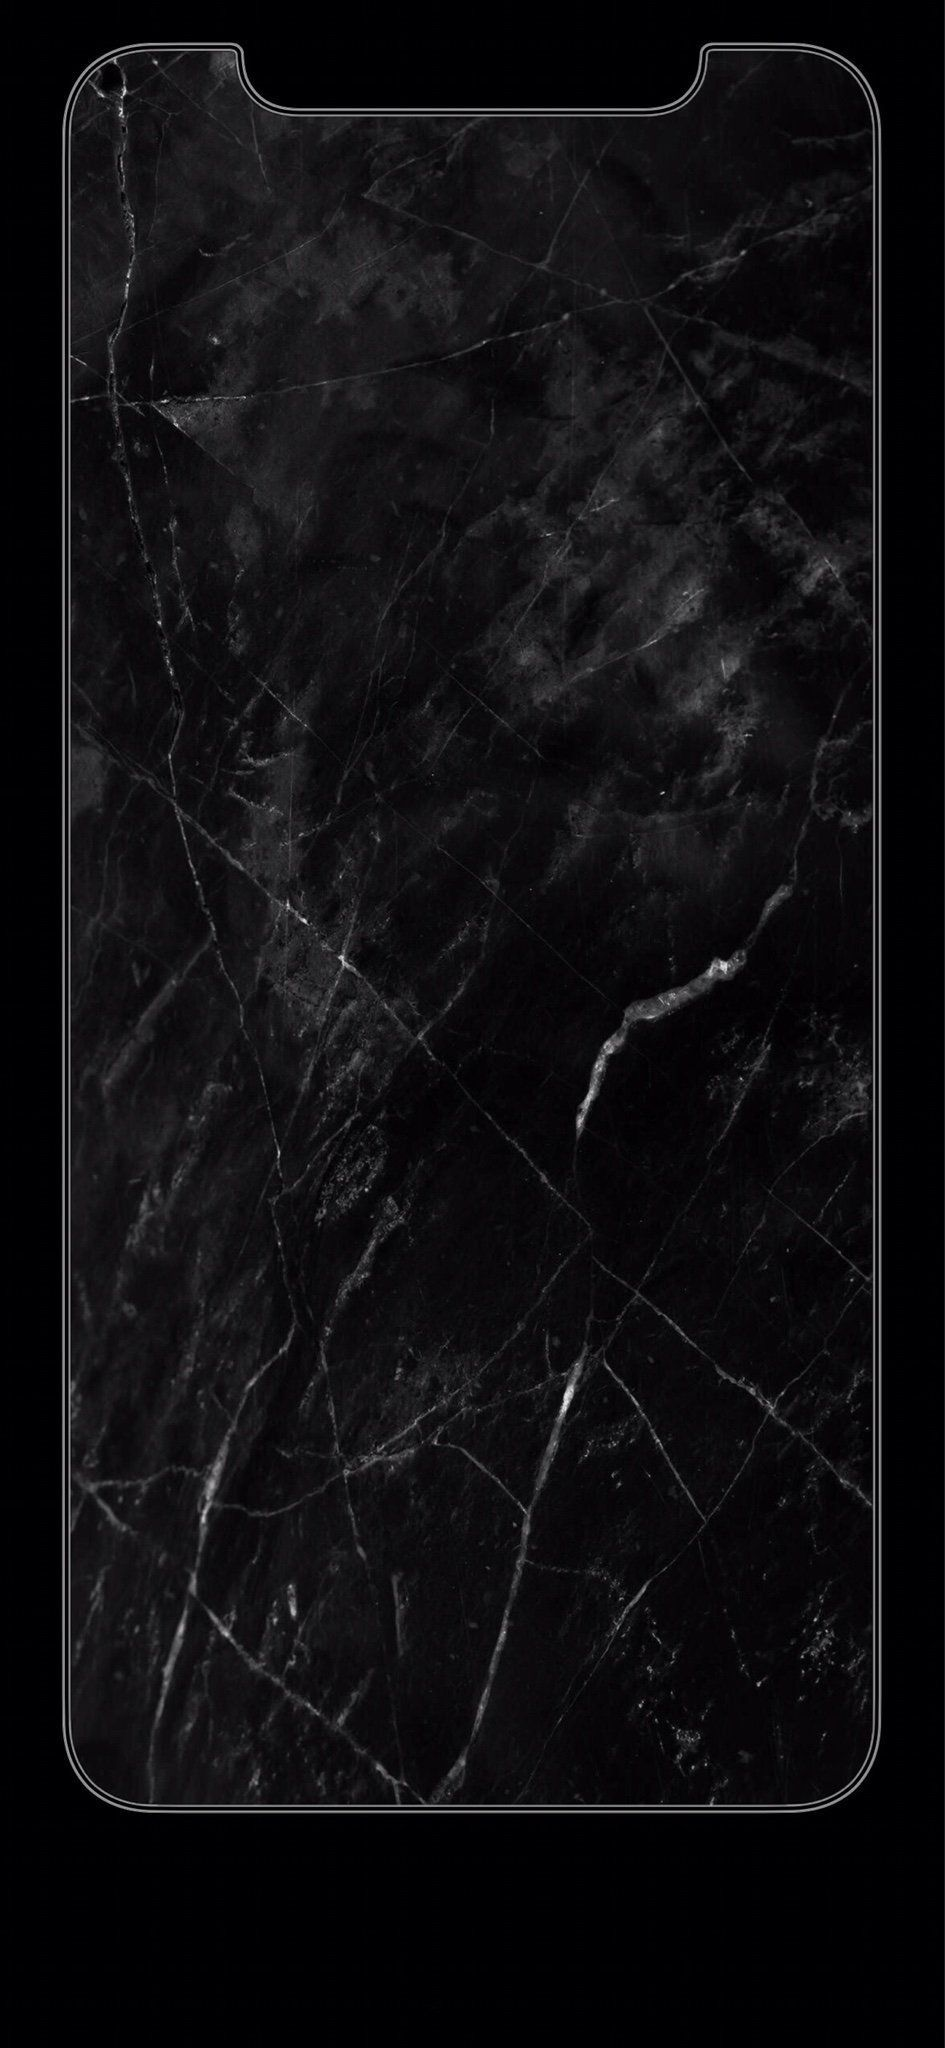 New The Most Beautiful Black Wallpaper For Iphone Xr Basecolor